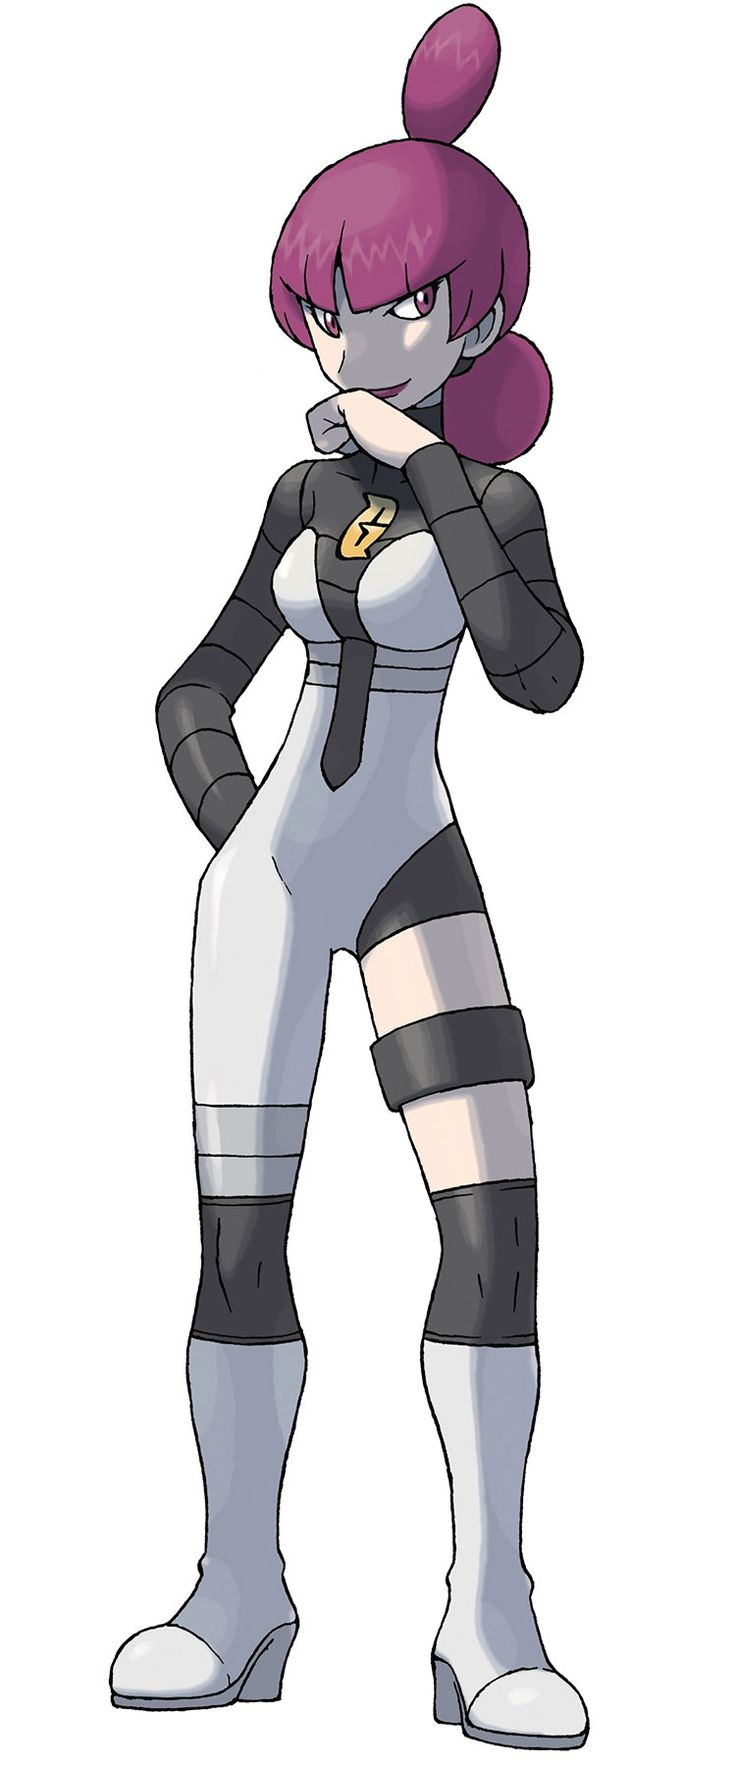 58 best pokémon diamond and pearl art & pictures images on